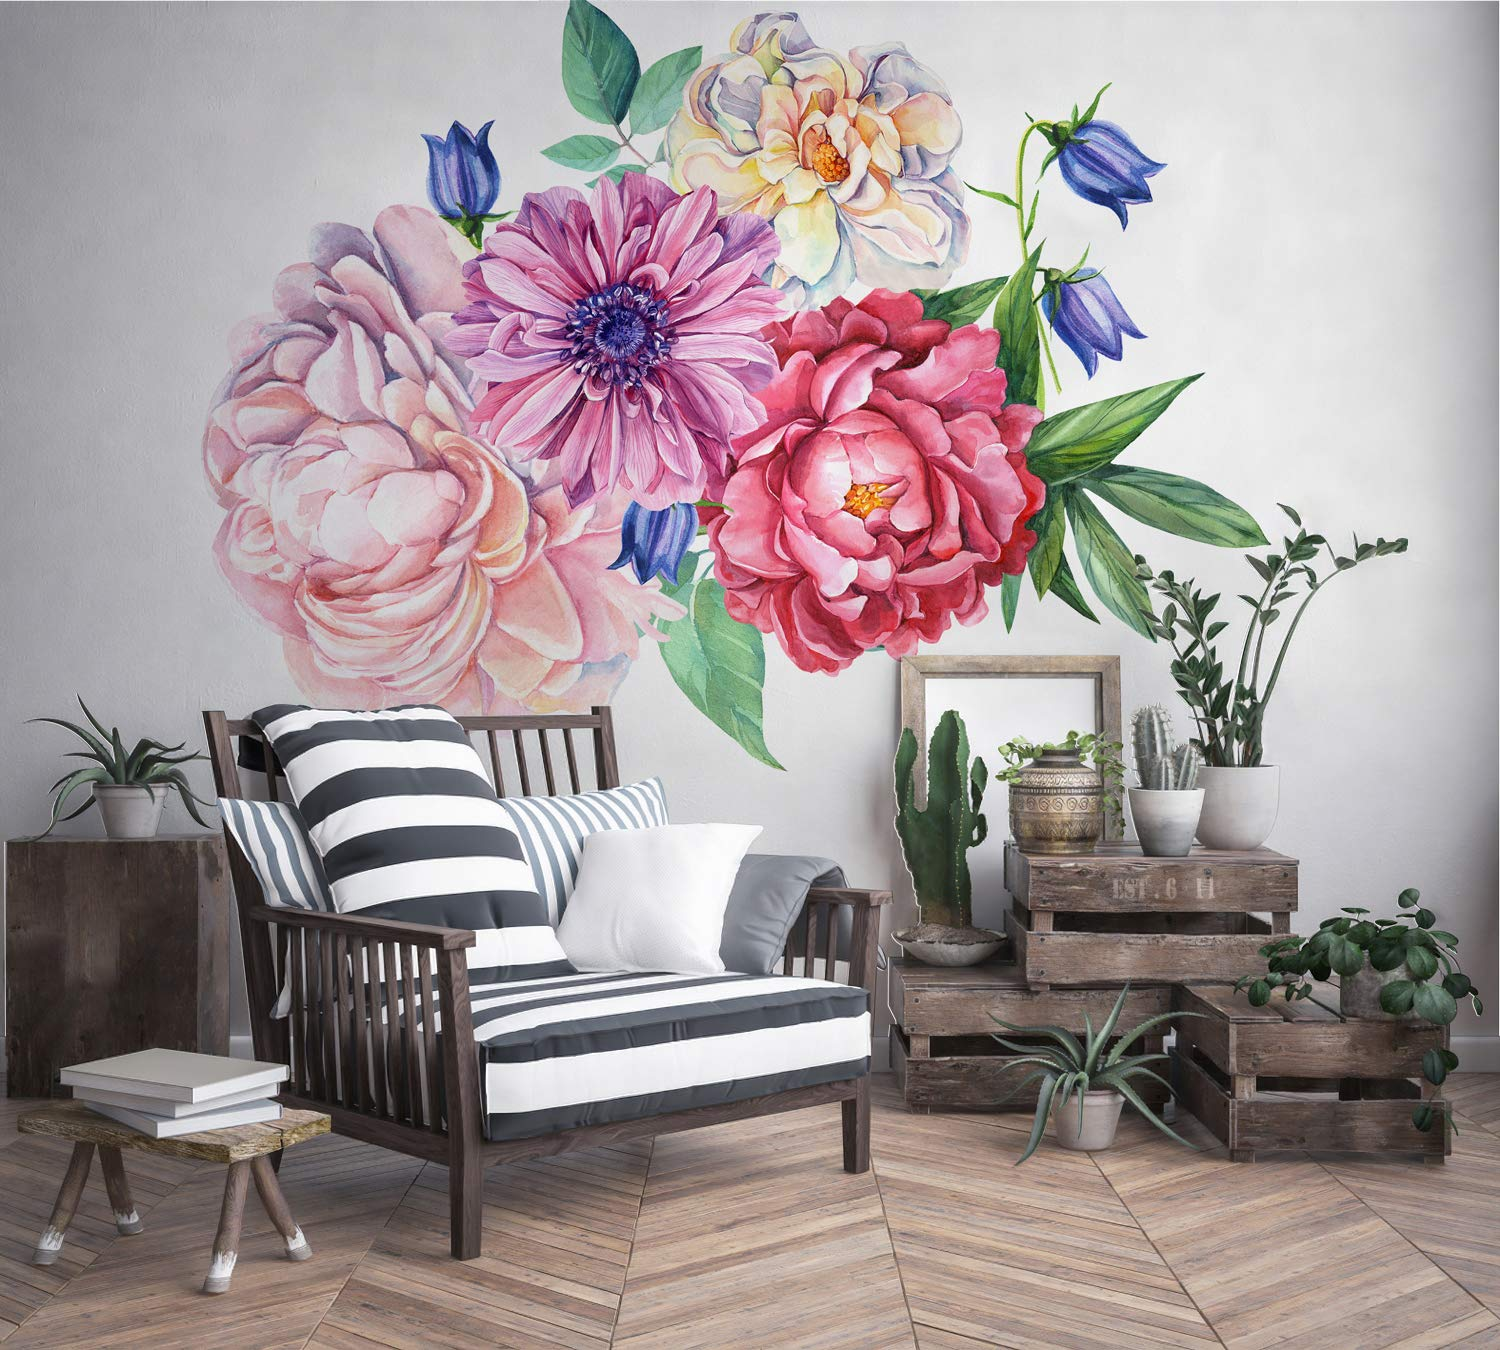 Murwall Peony Large Floral Wall Decal for Bedroom Watercolor Floral Wall  Sticker for Livingroom Red Pink Peonies Tulip Daisy Bouqet Decals Colorful  ...